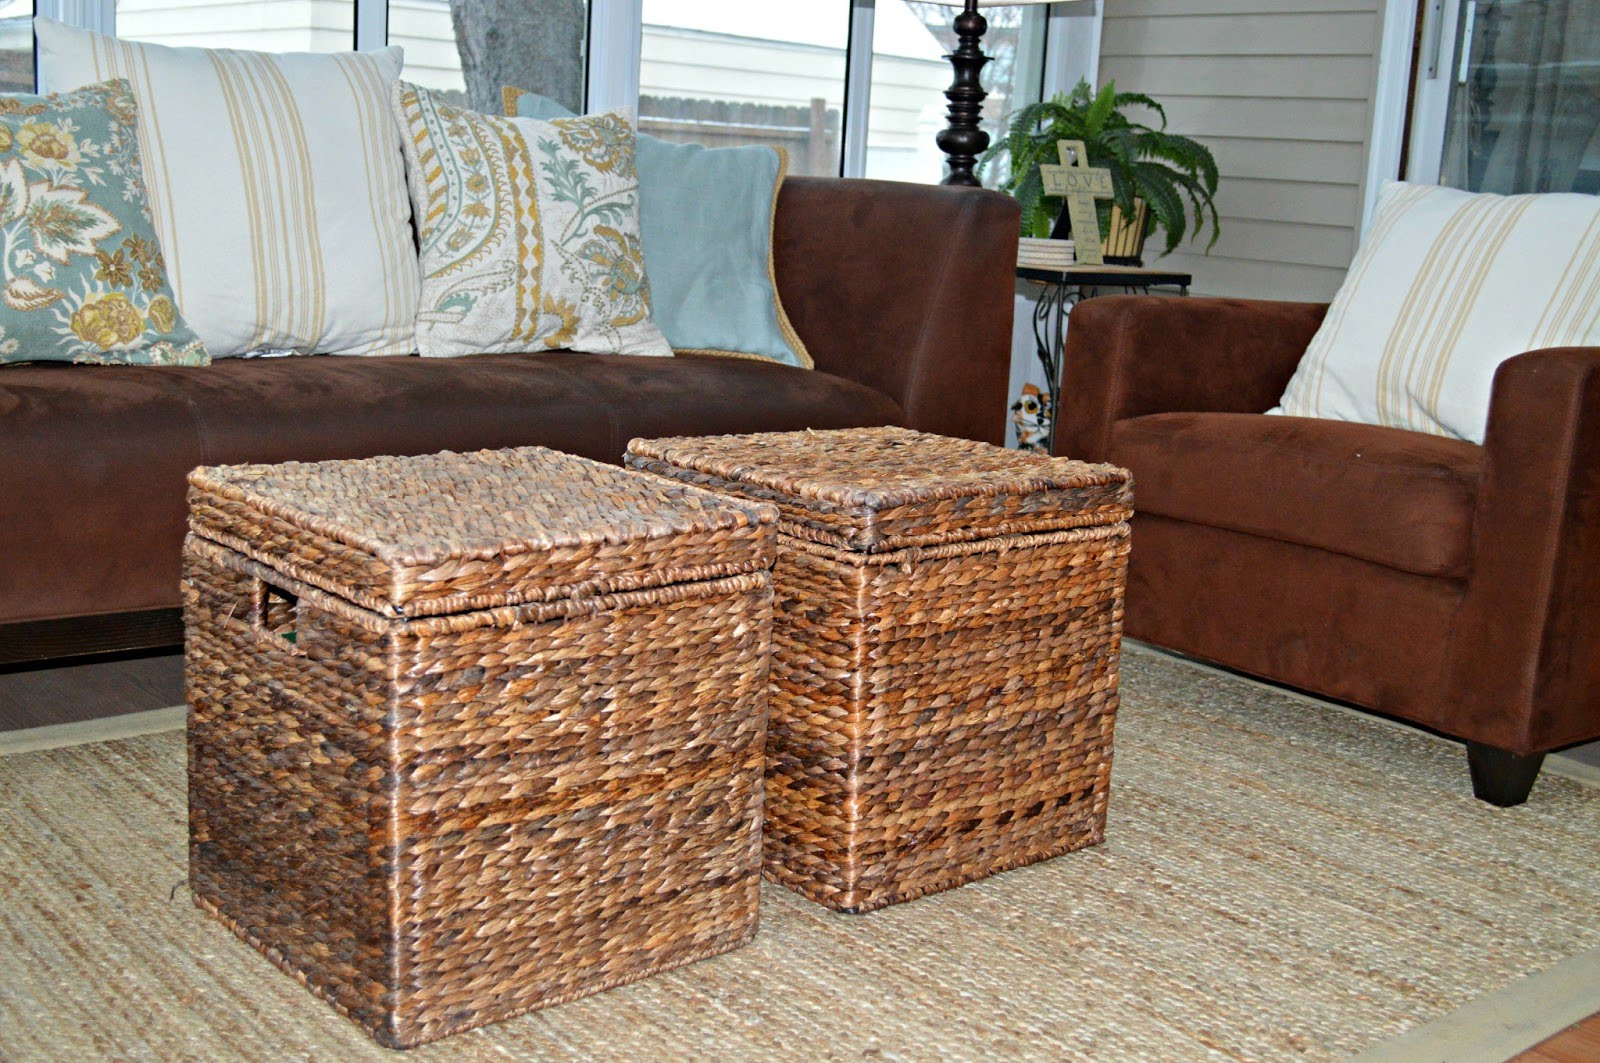 lift top coffee table the terrific best end side basket tier round with storage ikea hemnes outdoor furniture woodworking software sofa tray rustic leather glass and wood inch